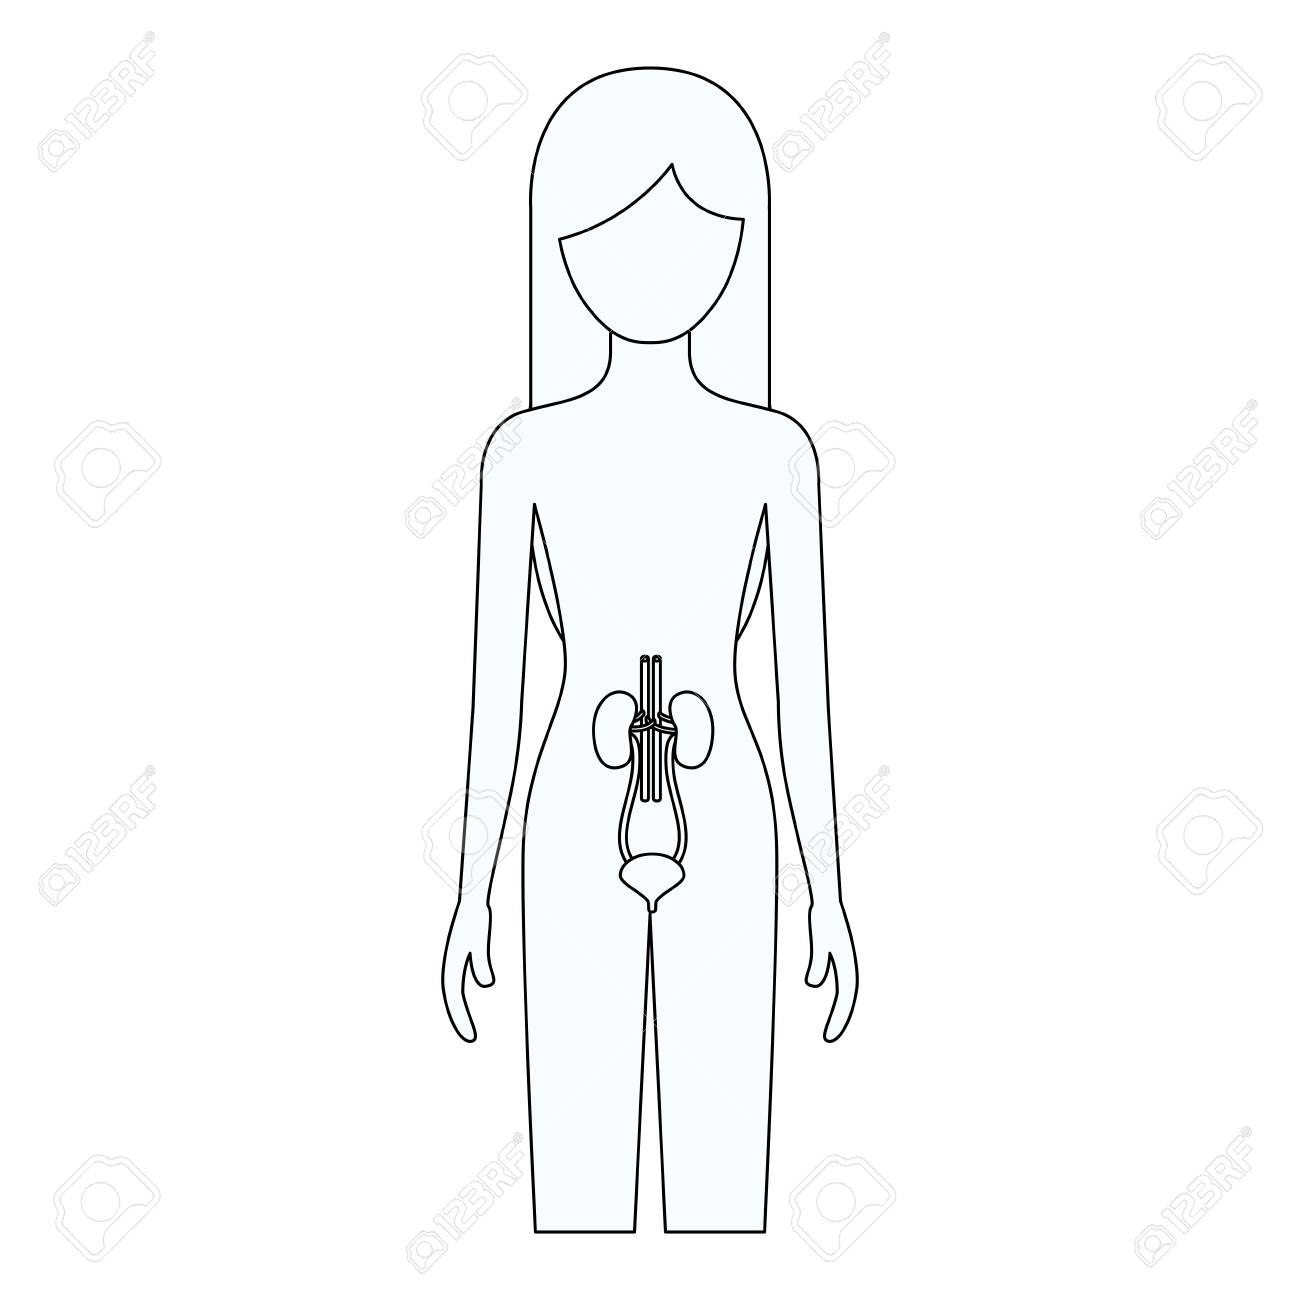 1300x1300 Sketch Silhouette Of Female Person With Renal System Human Body